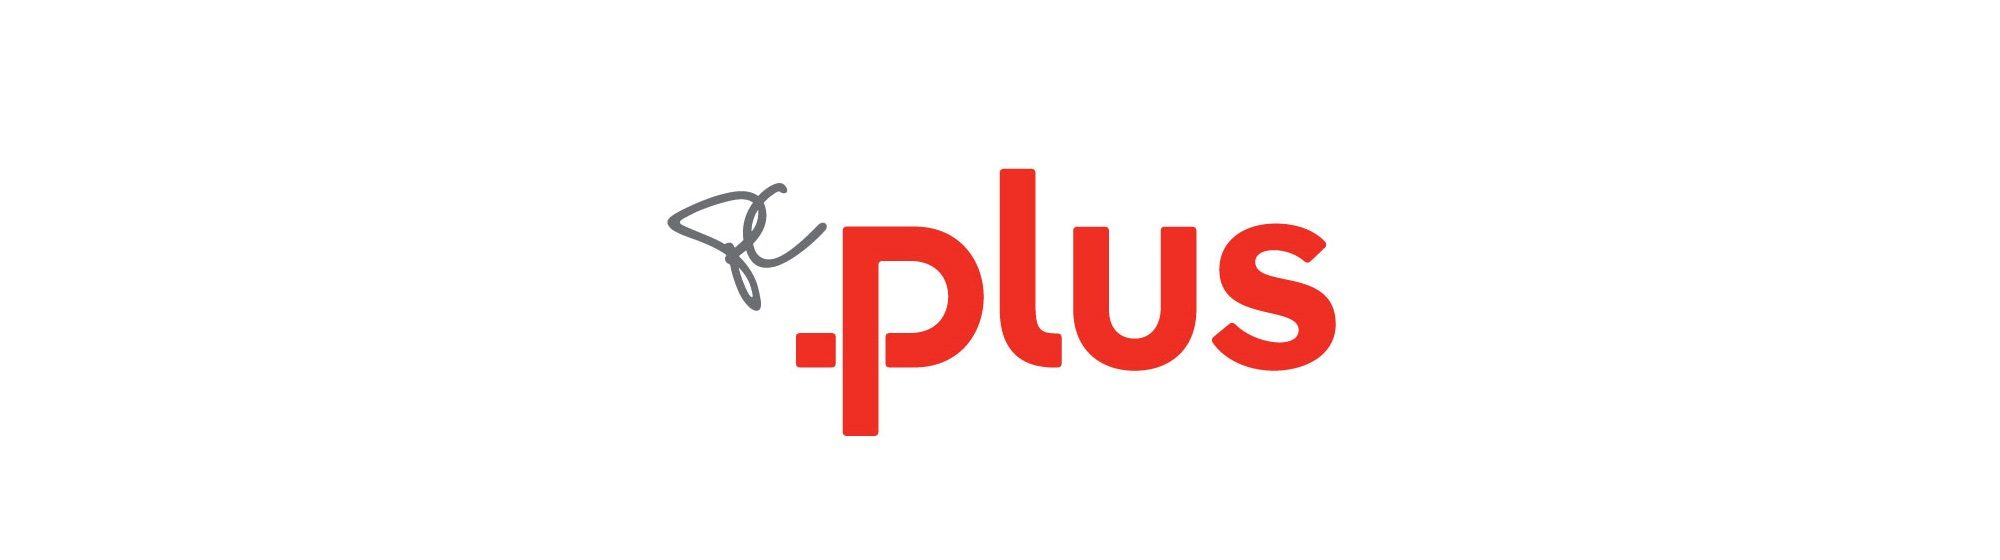 Loblaw Resets All PC Plus Passwords Following Security Breach ...